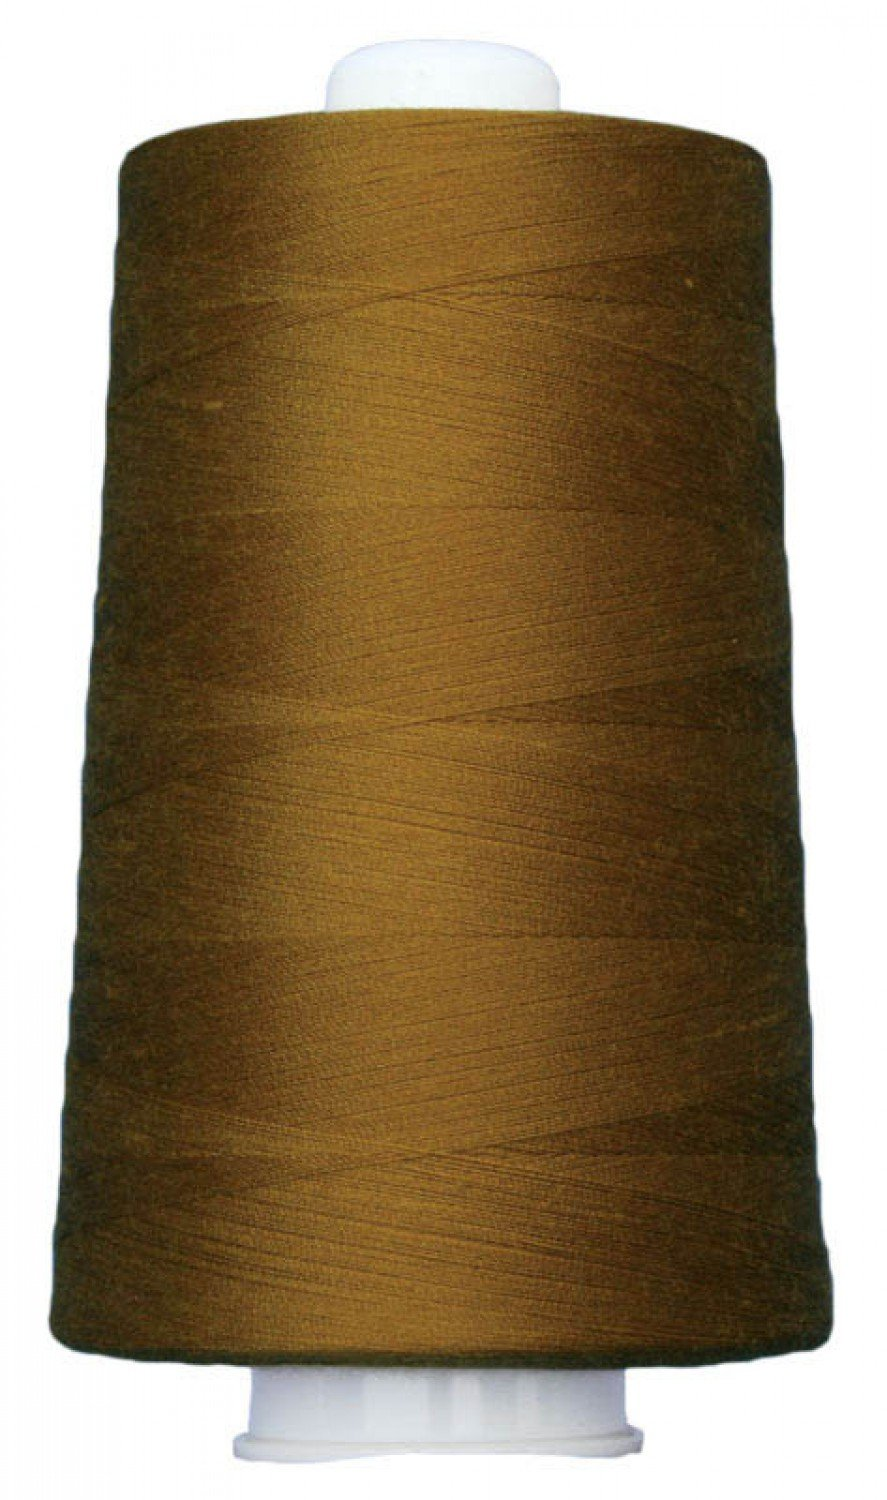 OMNI Polyester Thread 40 wt 6000 yds 3046 Antique Gold by Superior